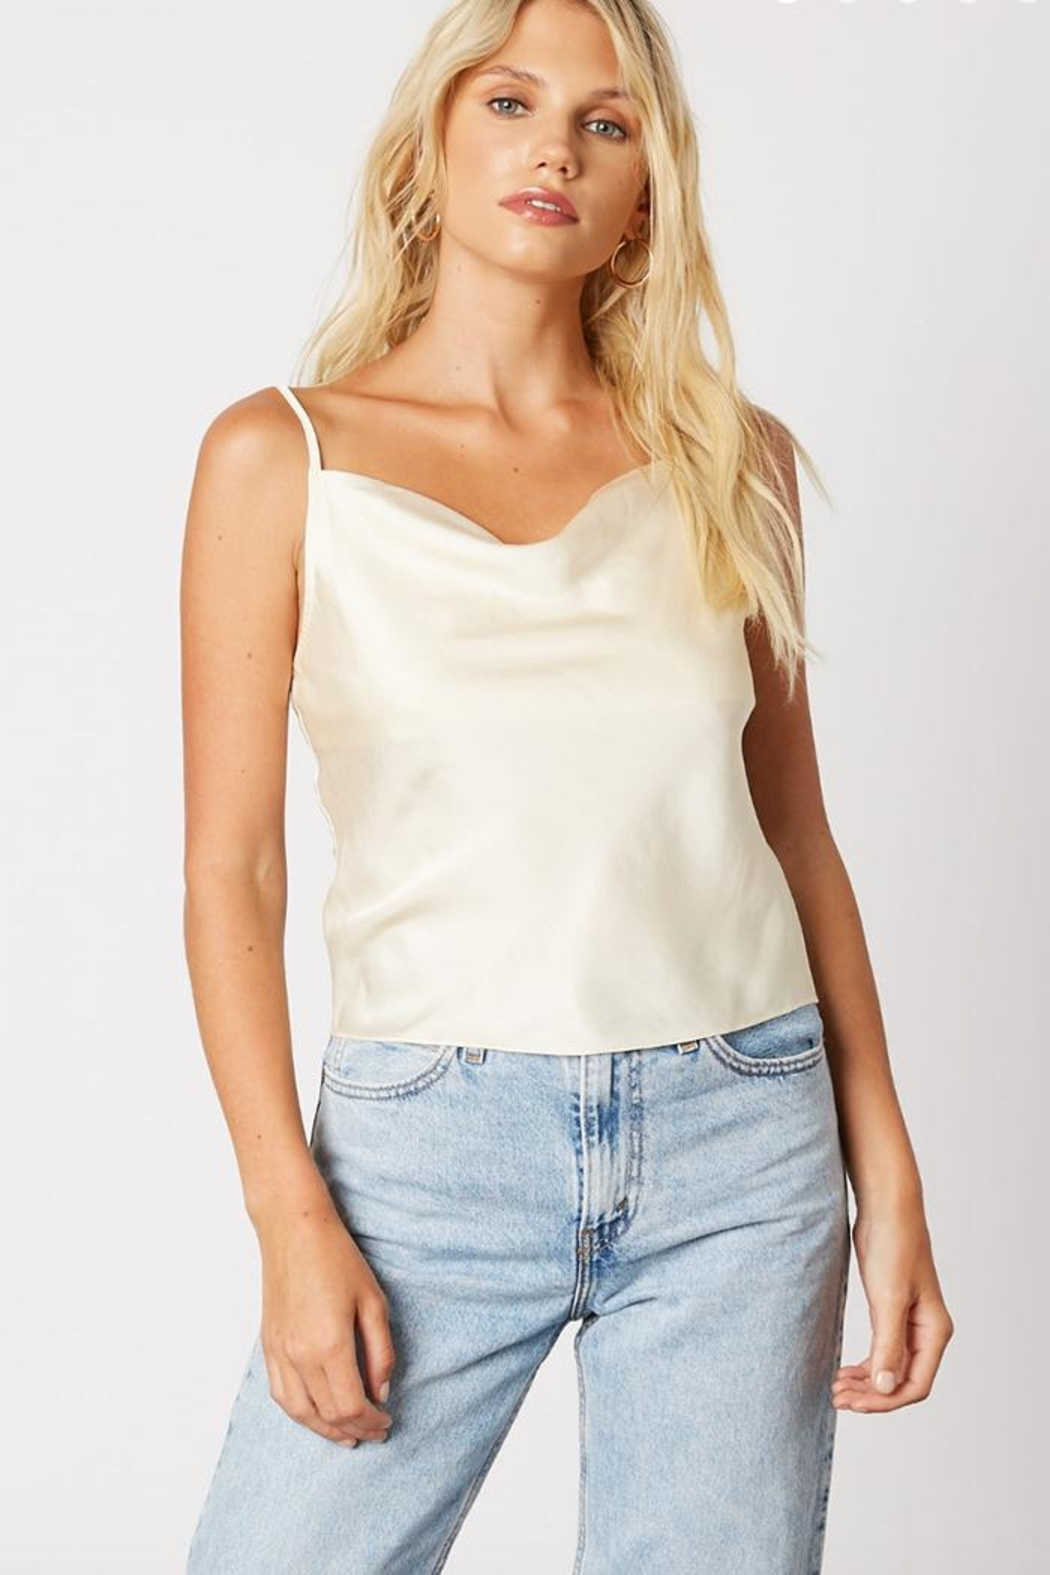 Cotton Candy LA Cream Satin Cami - Front Cropped Image